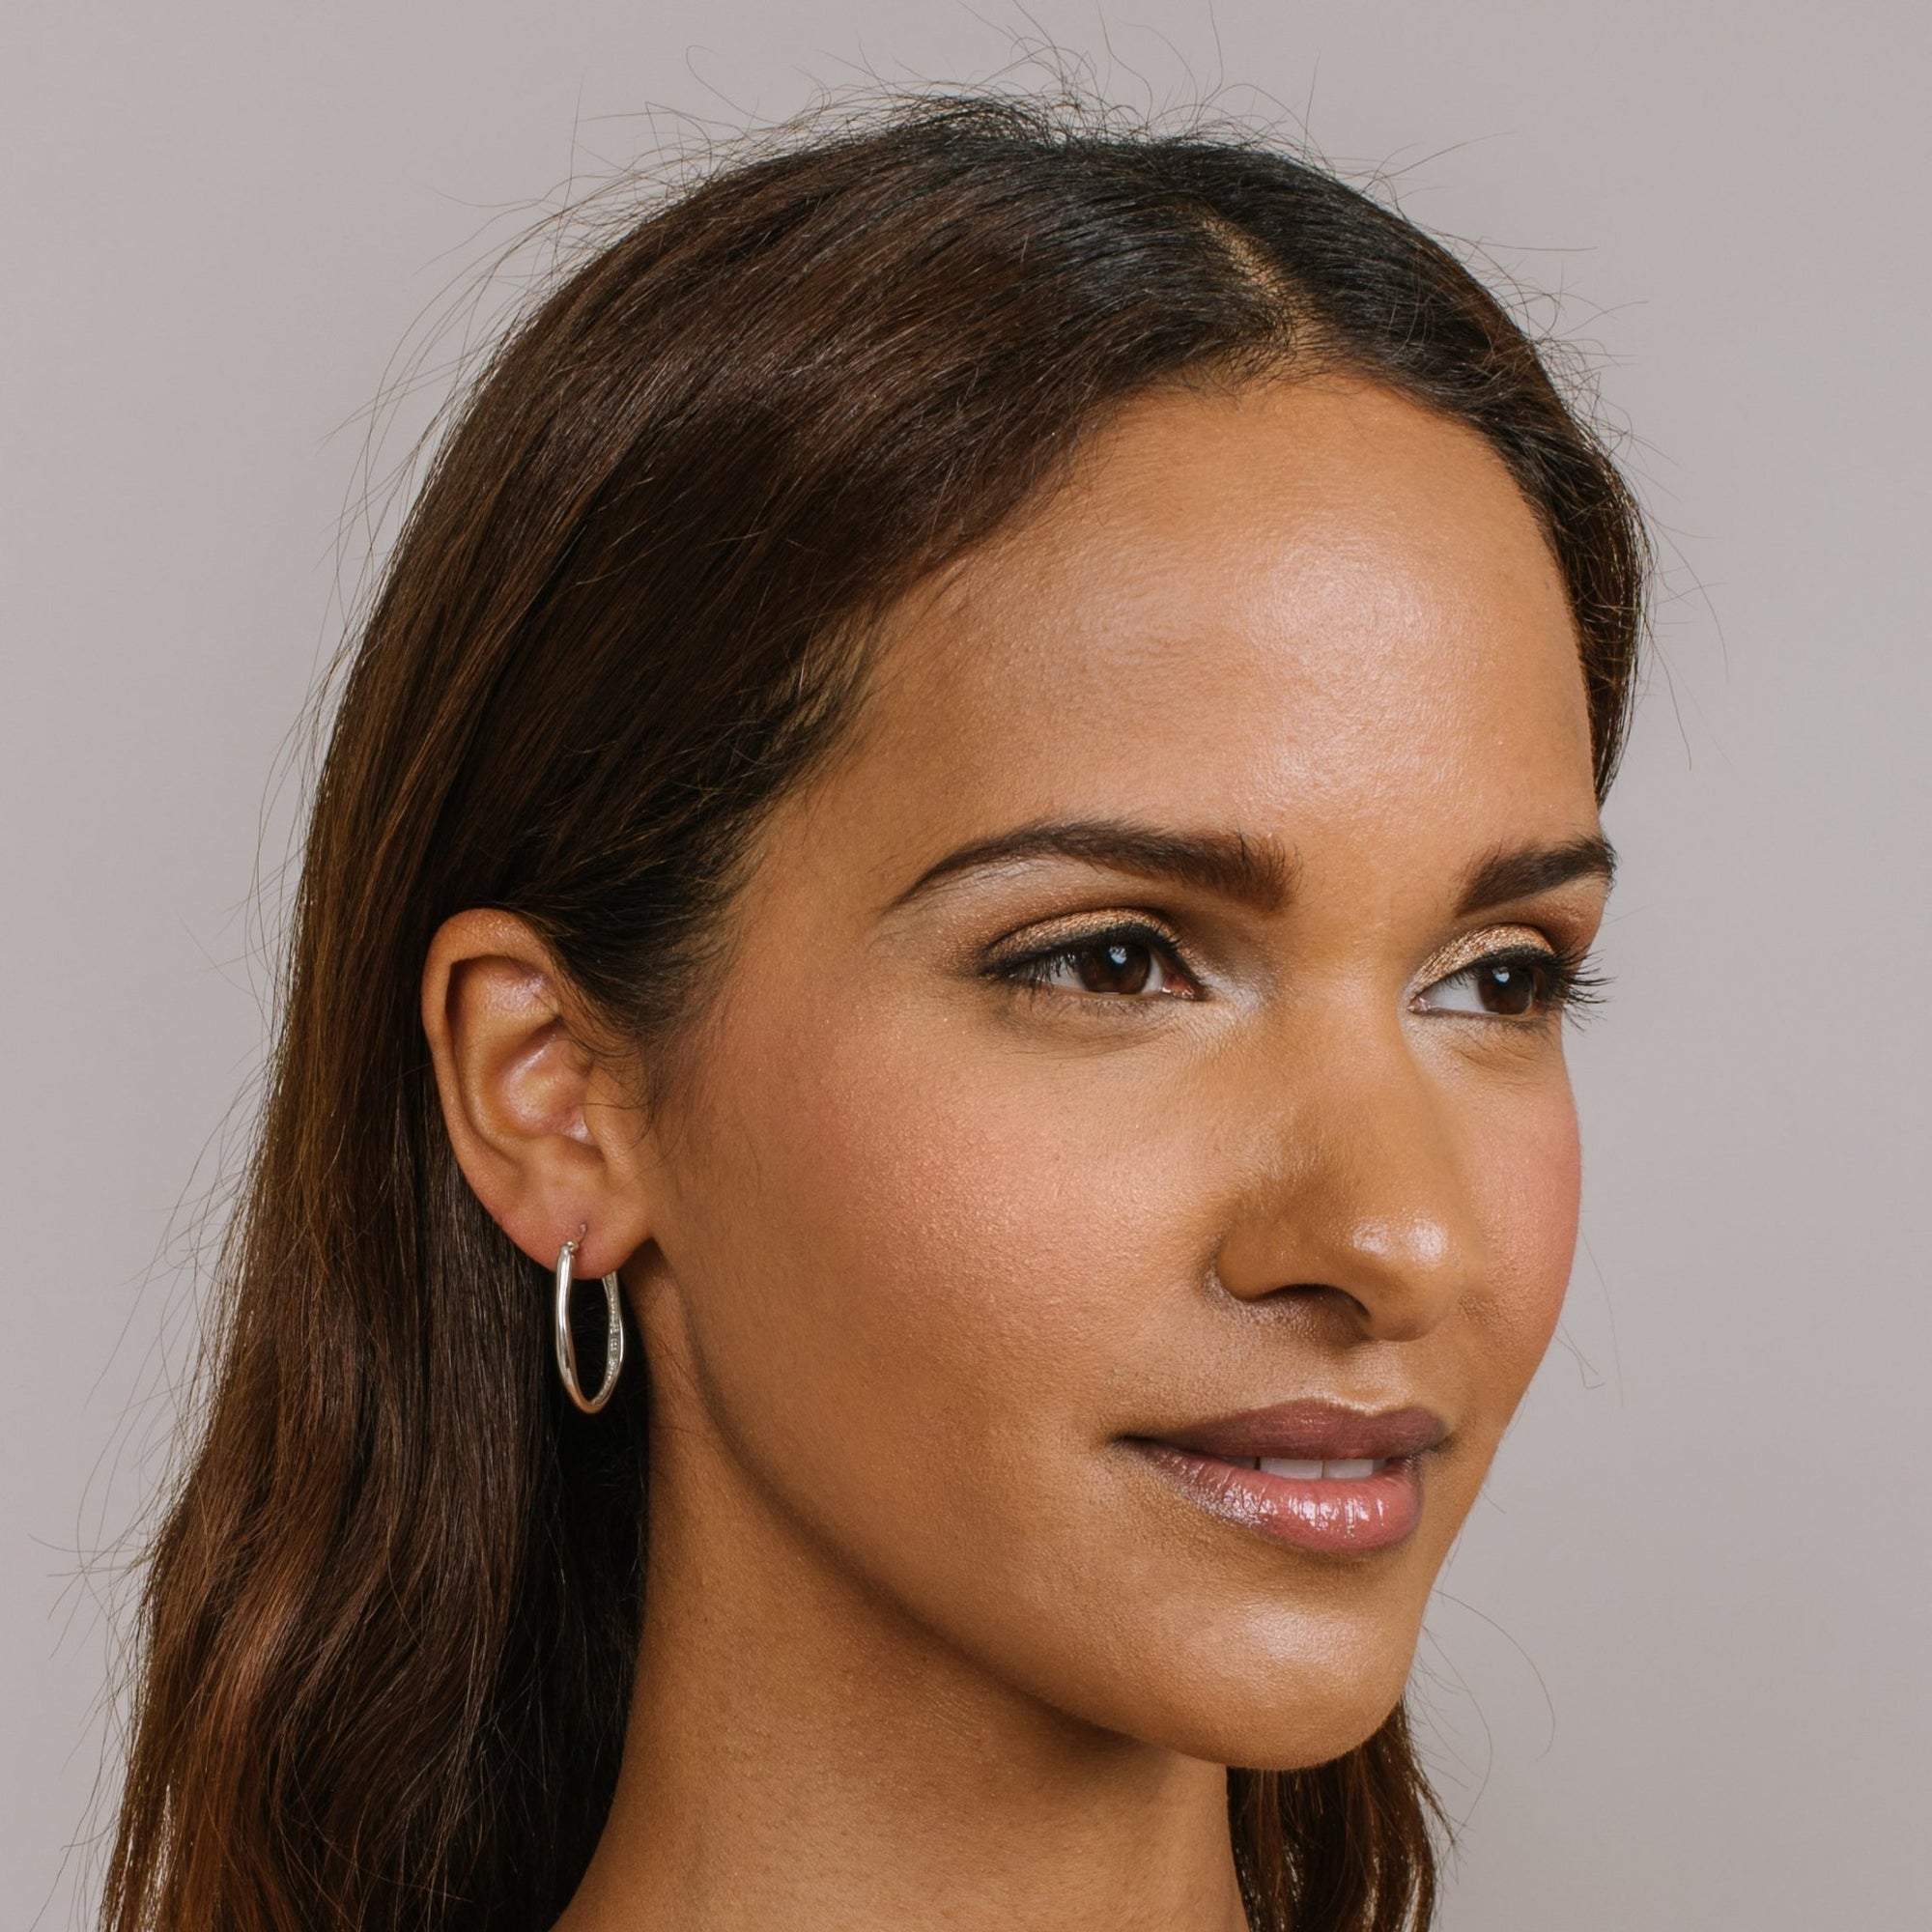 MIDI POISE HOOP EARRINGS - SILVER - SO PRETTY CARA COTTER